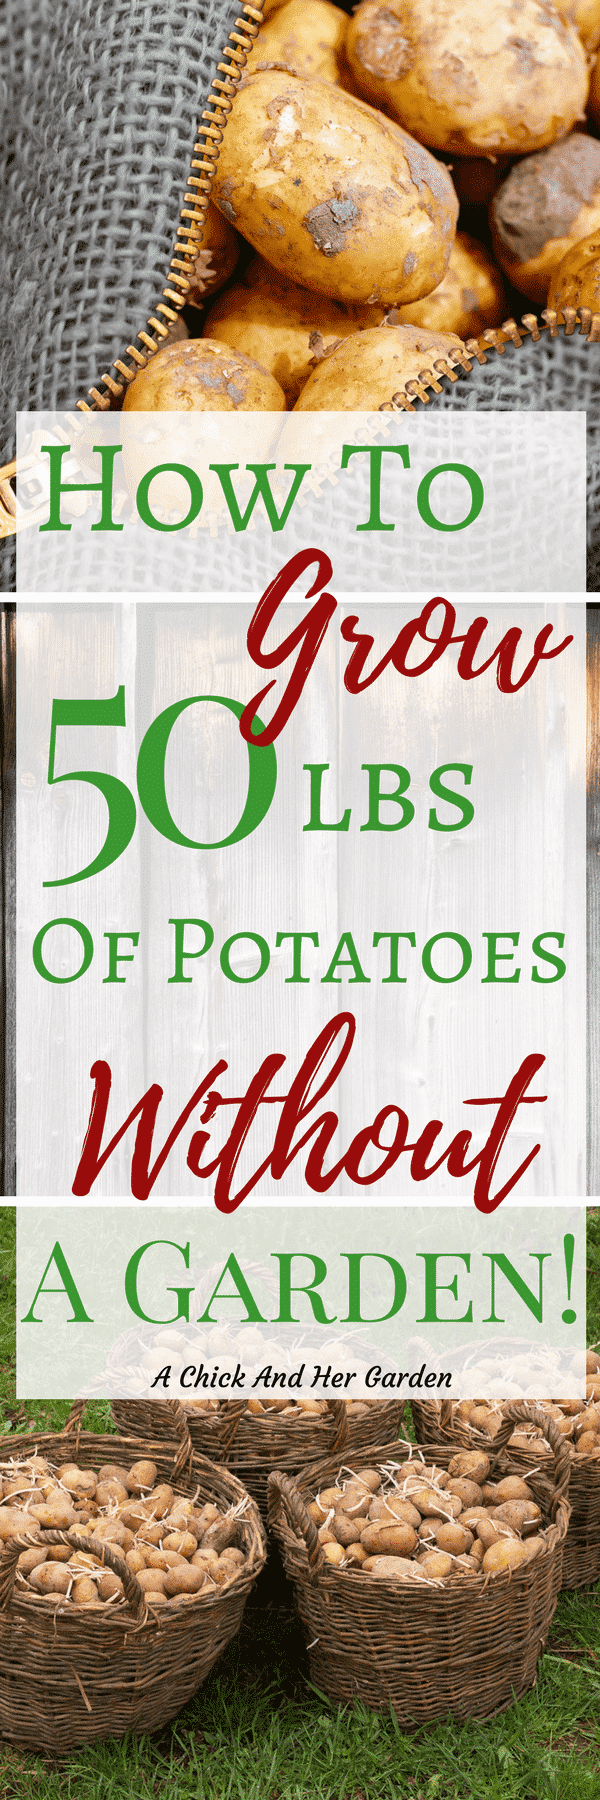 I love potatoes but hated growing potatoes! It can be so much work and takes up even more space!! With this method of growing potatoes you really could do it without even having a garden! #gardening #growyourownfood #containergardening #vegetablegardening #growpotatoes #howtogrowpotatoes